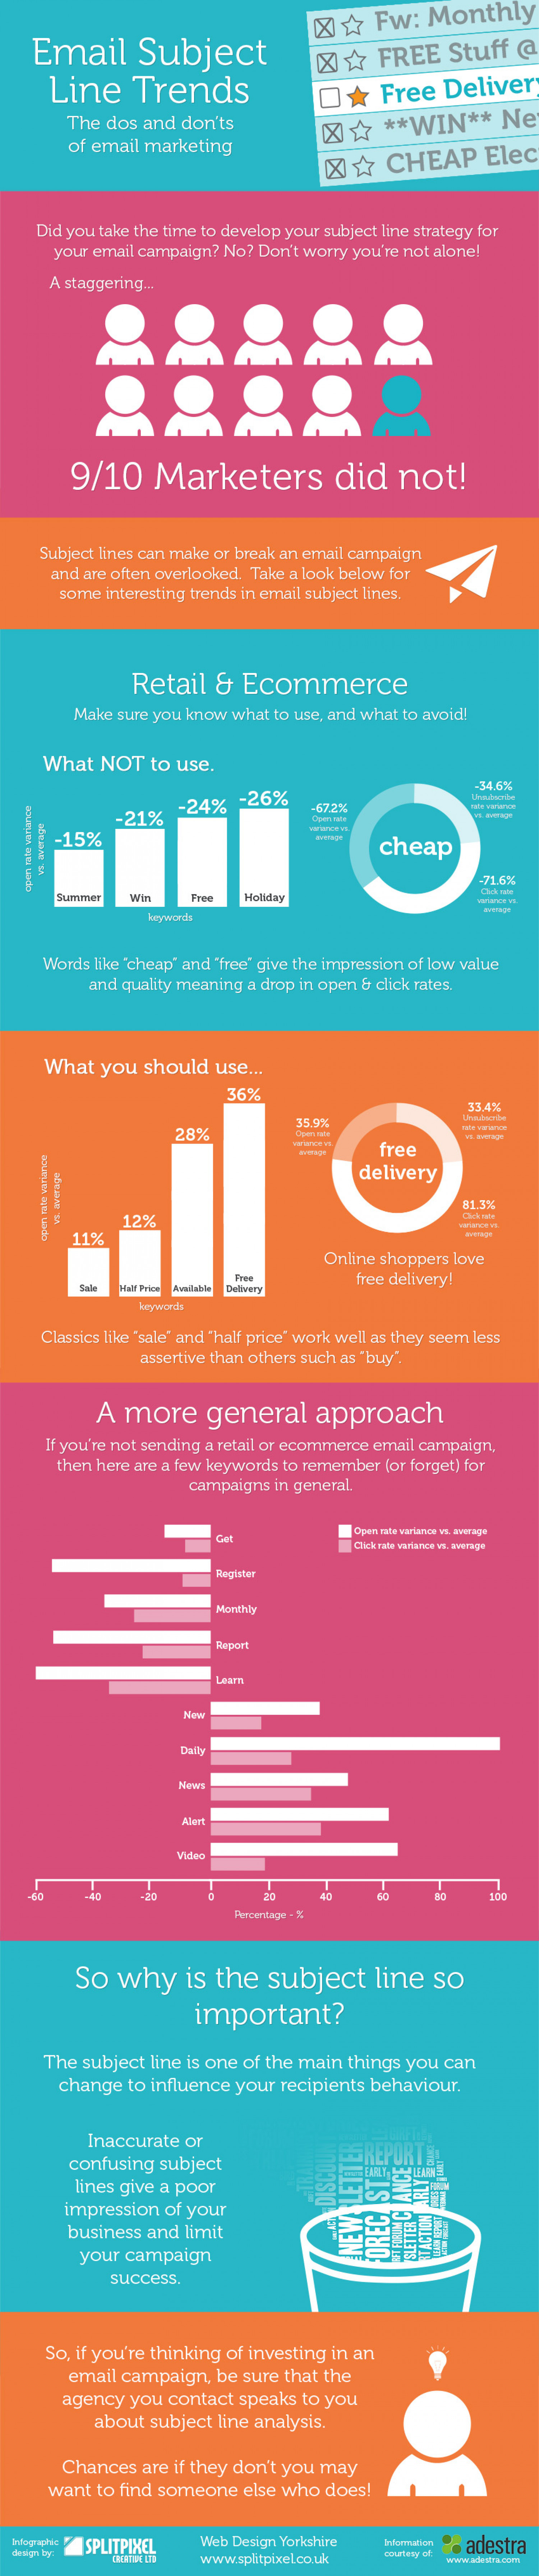 Email Subject Line Trends  Infographic